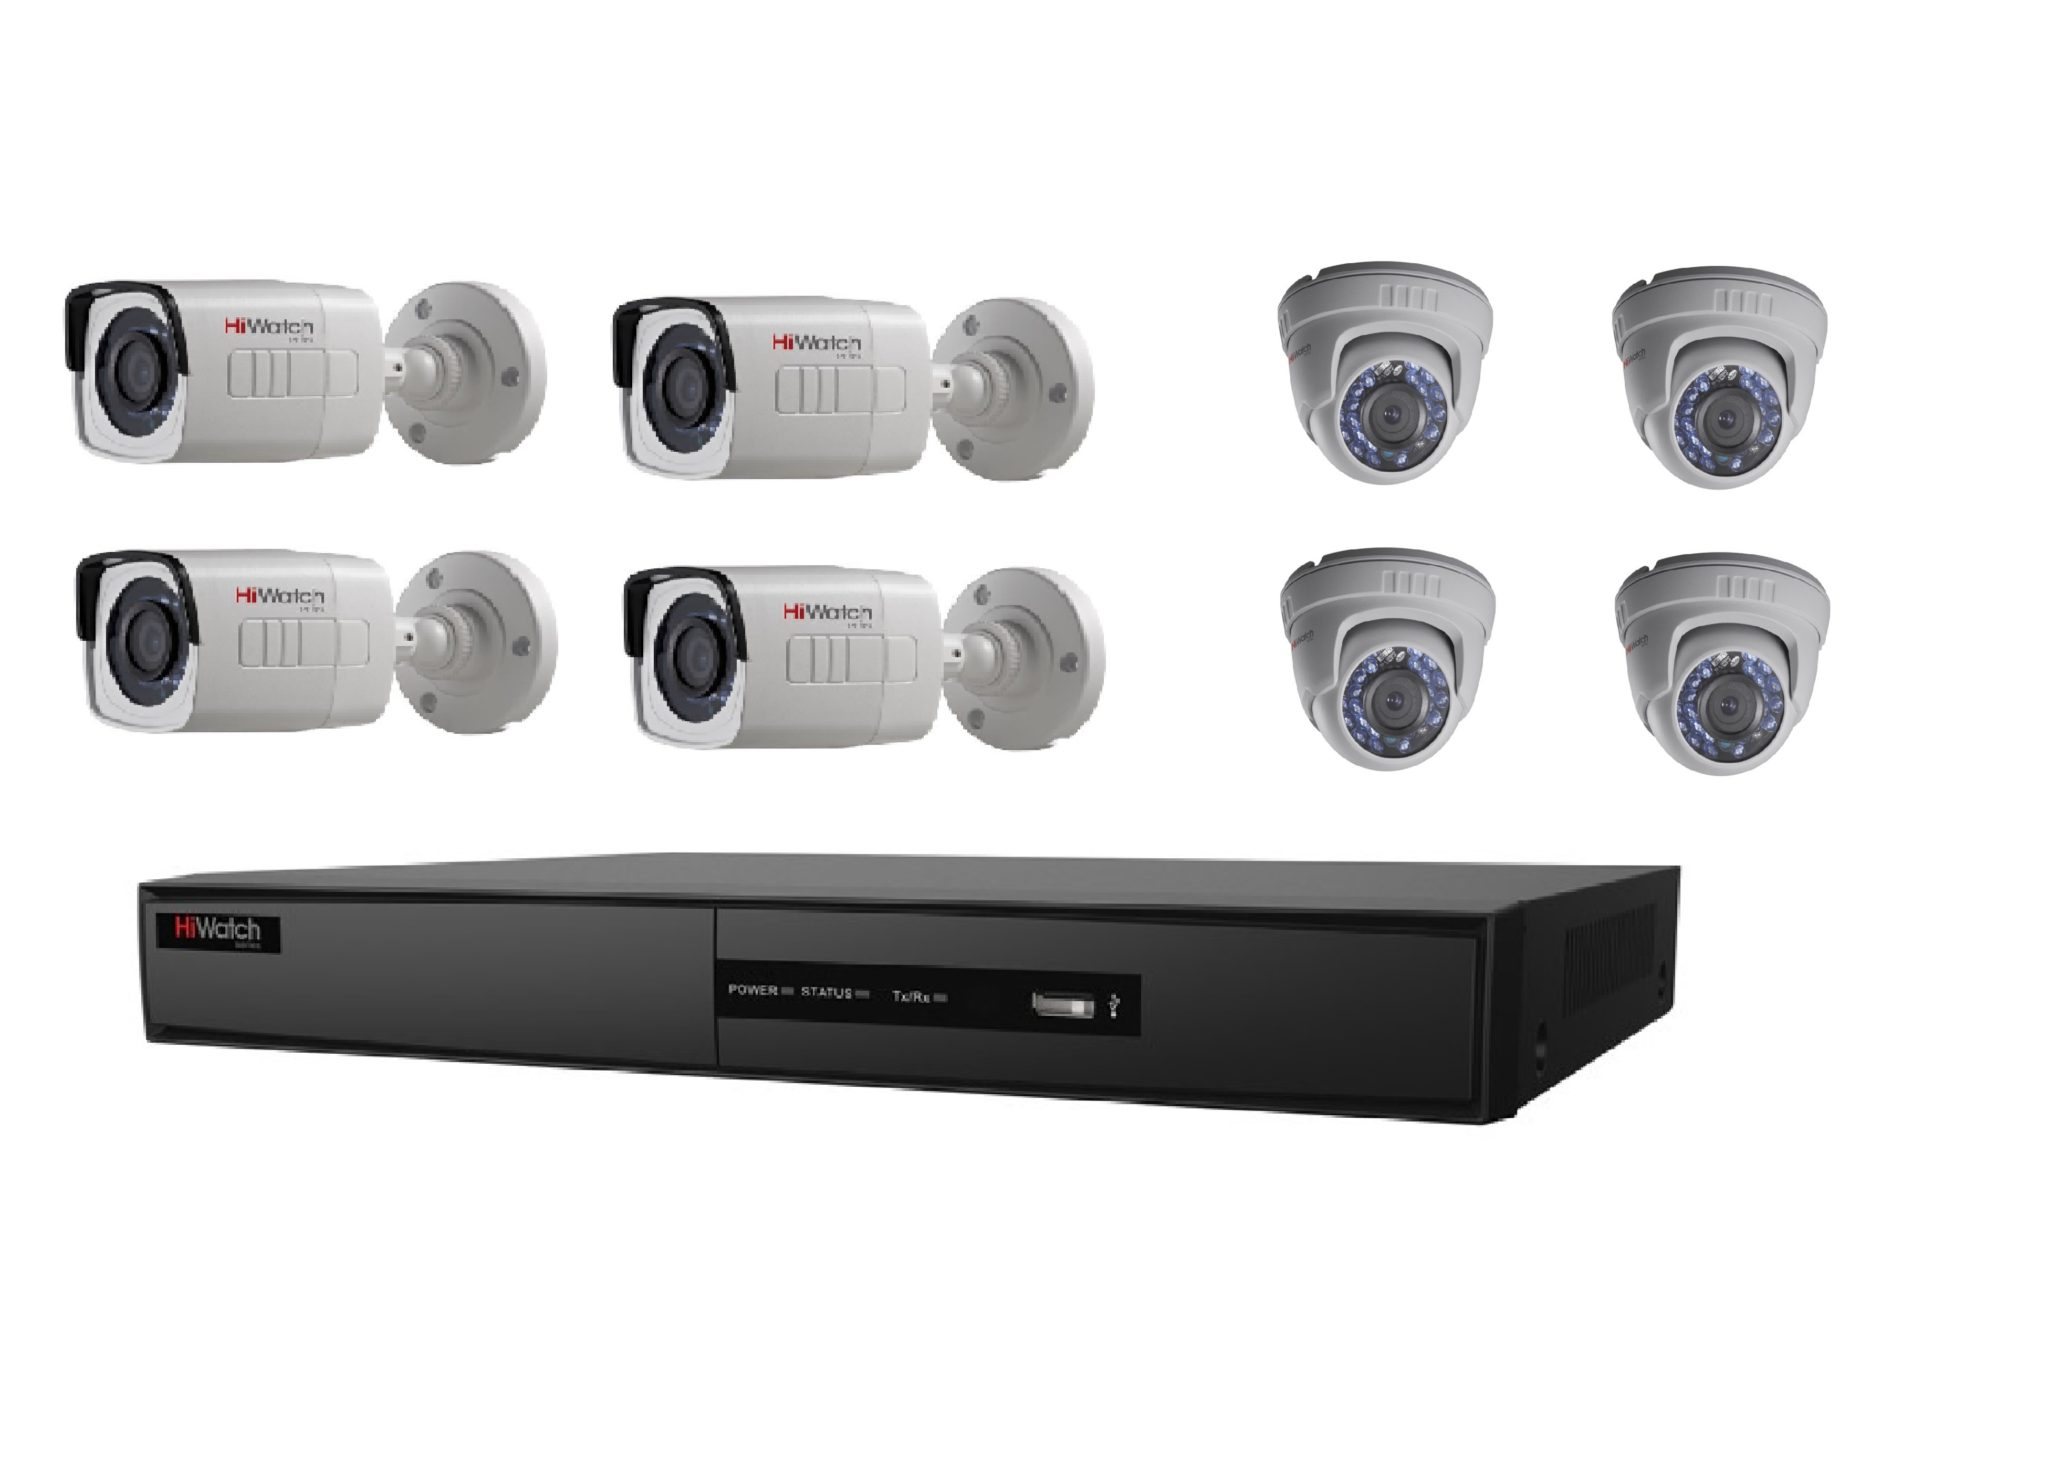 Diy Home Security Cameras Reviews Diy 8 Cctv Camera Package Hiwatch By Hikvision Vip 360